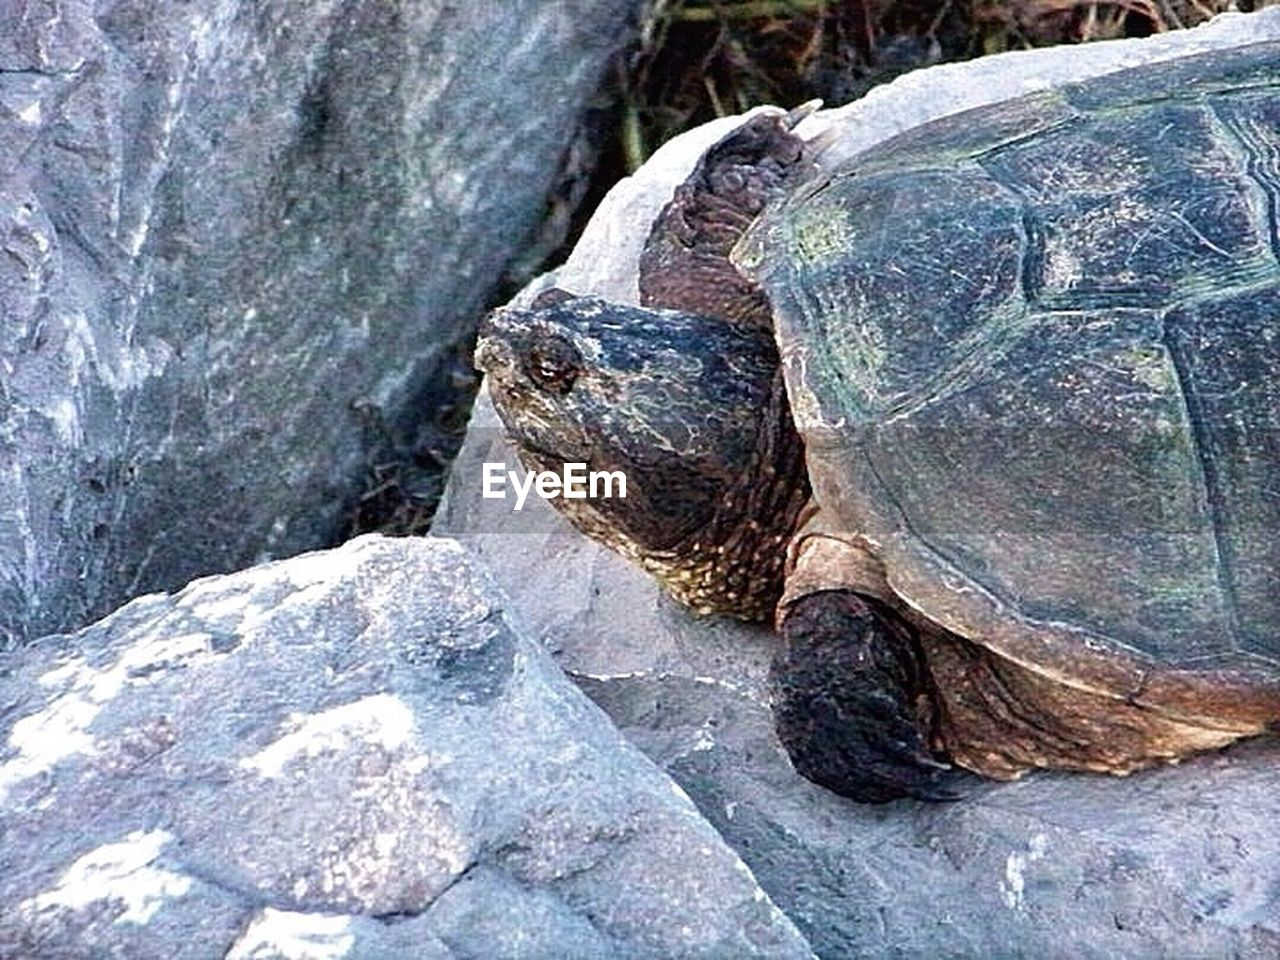 animal shell, tortoise, animals in the wild, reptile, tortoise shell, animal wildlife, one animal, animal themes, turtle, day, nature, outdoors, no people, beauty in nature, close-up